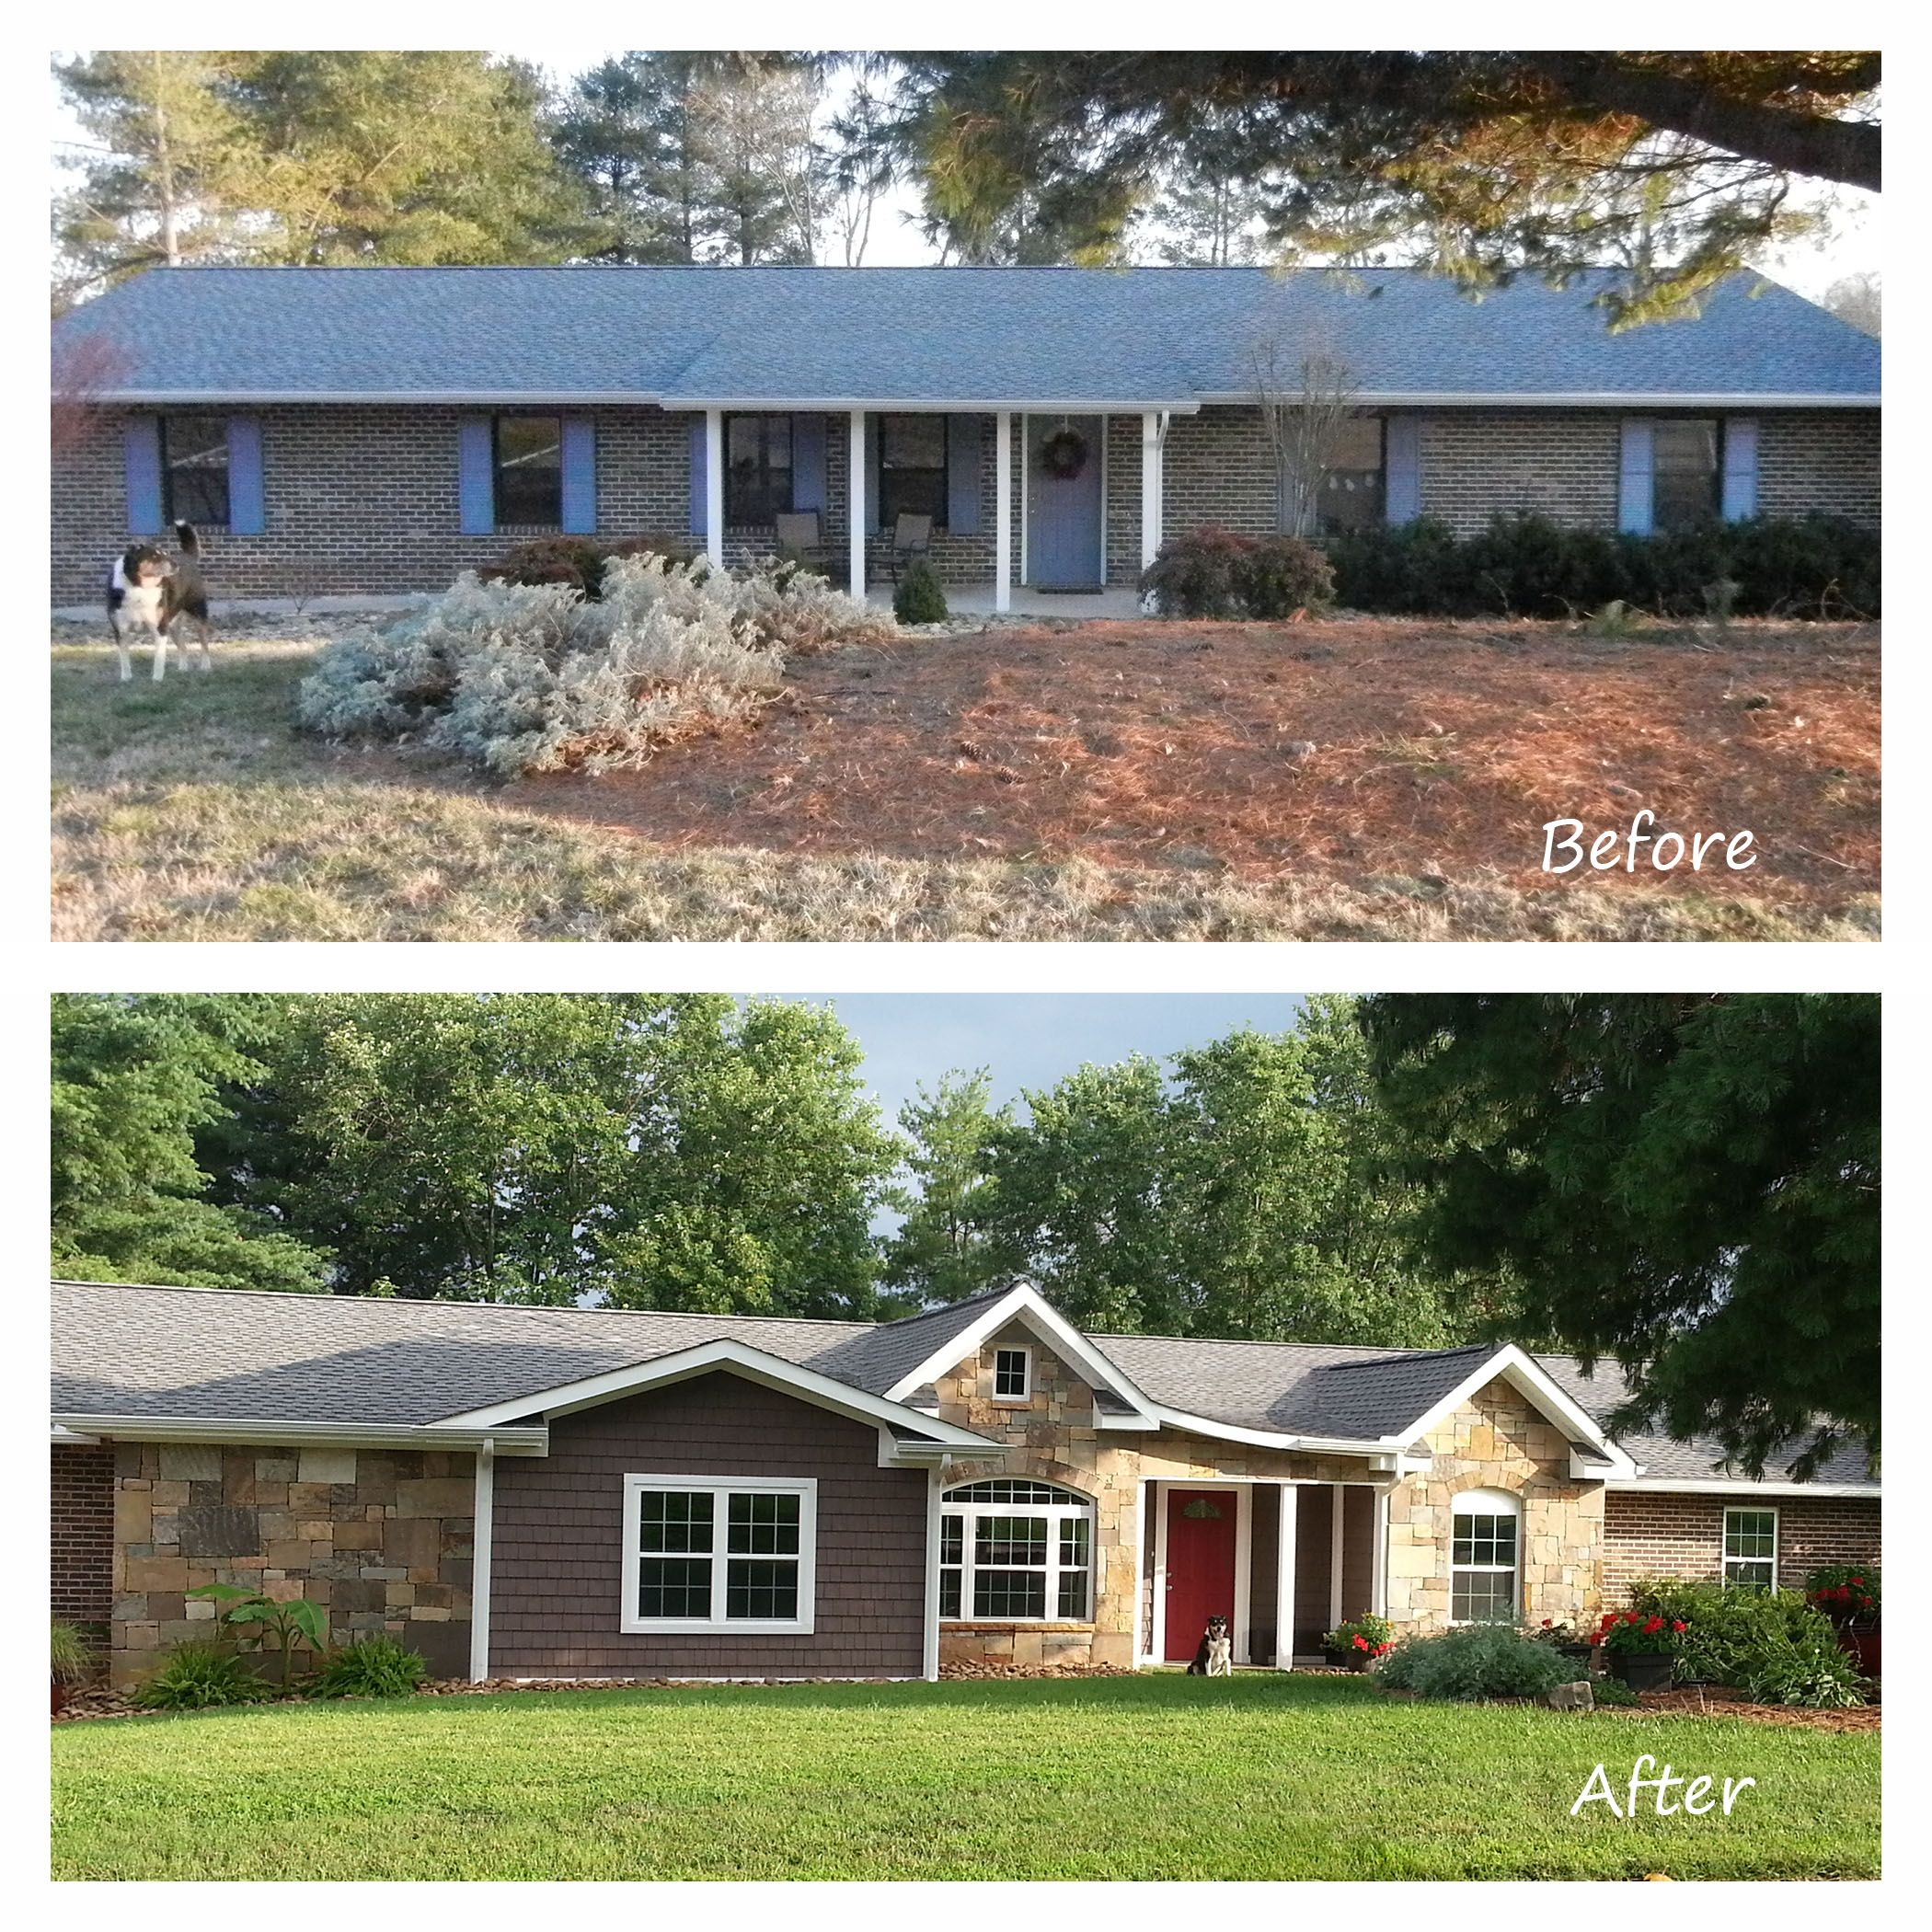 Before and after exterior renovation ranch house remodel for 70s house exterior makeover australia